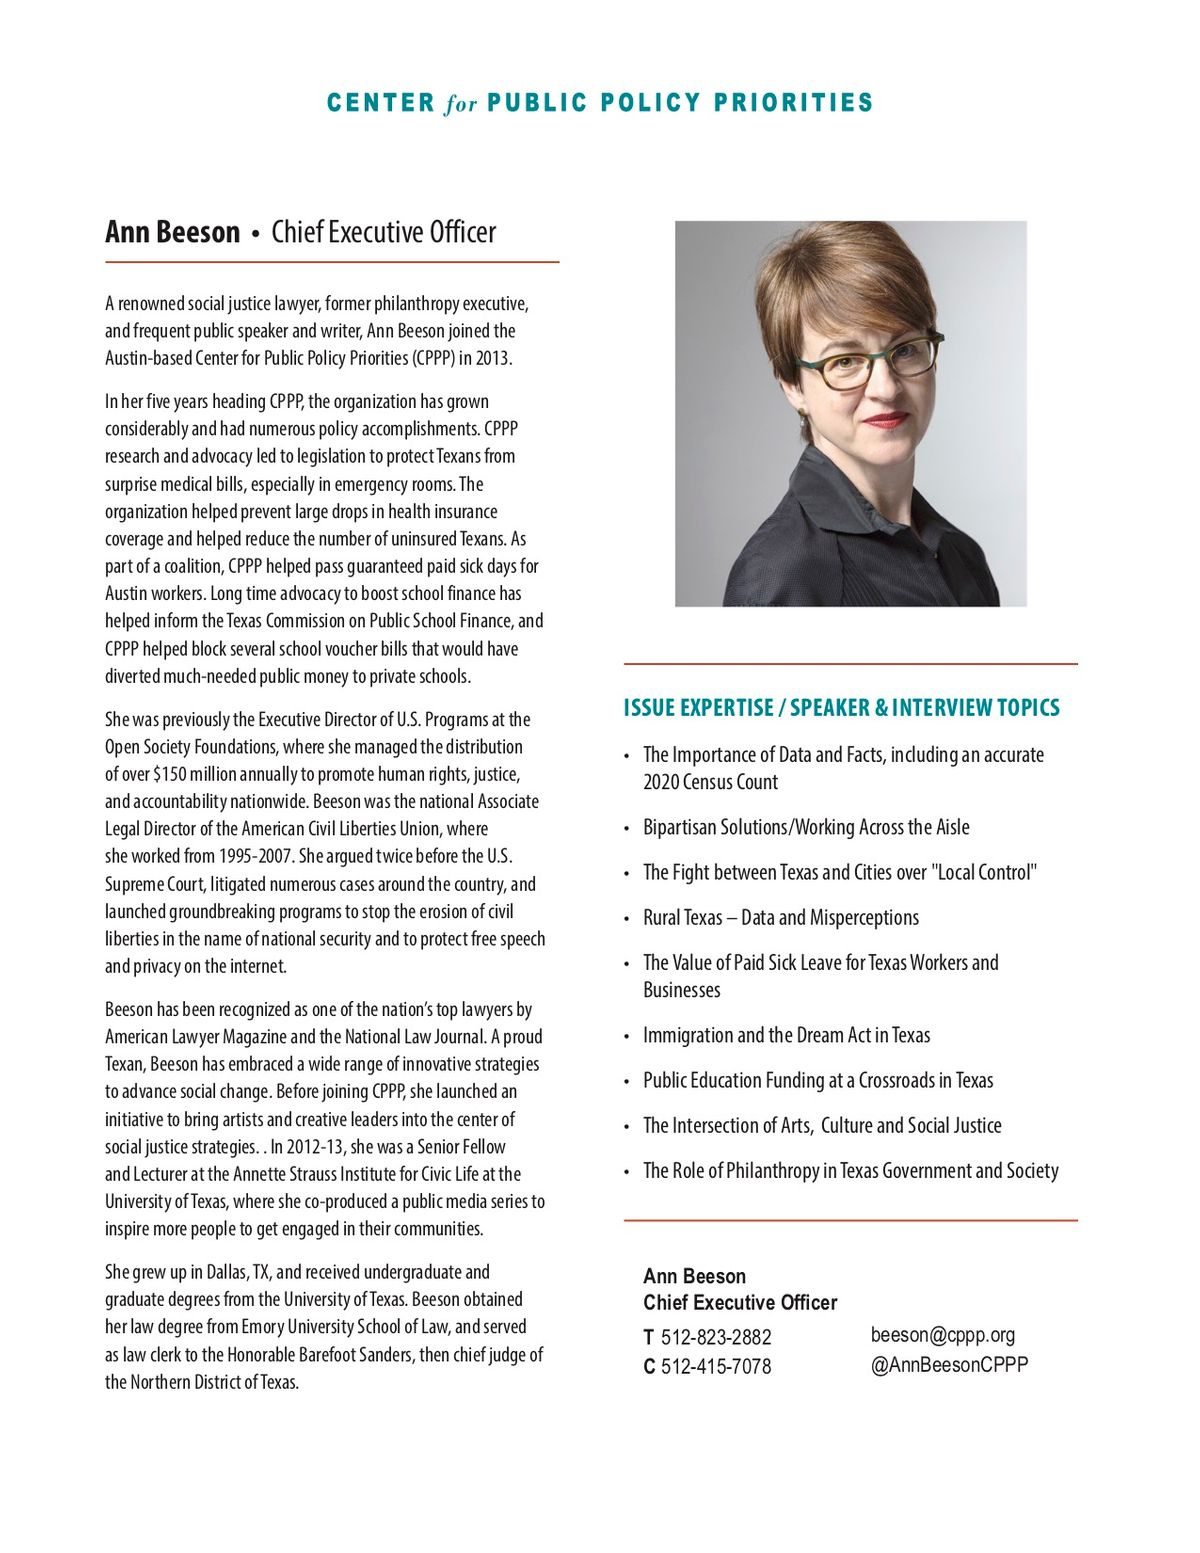 CPPP.AnnBeeson.CEO.One-Sheet.11.2.18.jpg